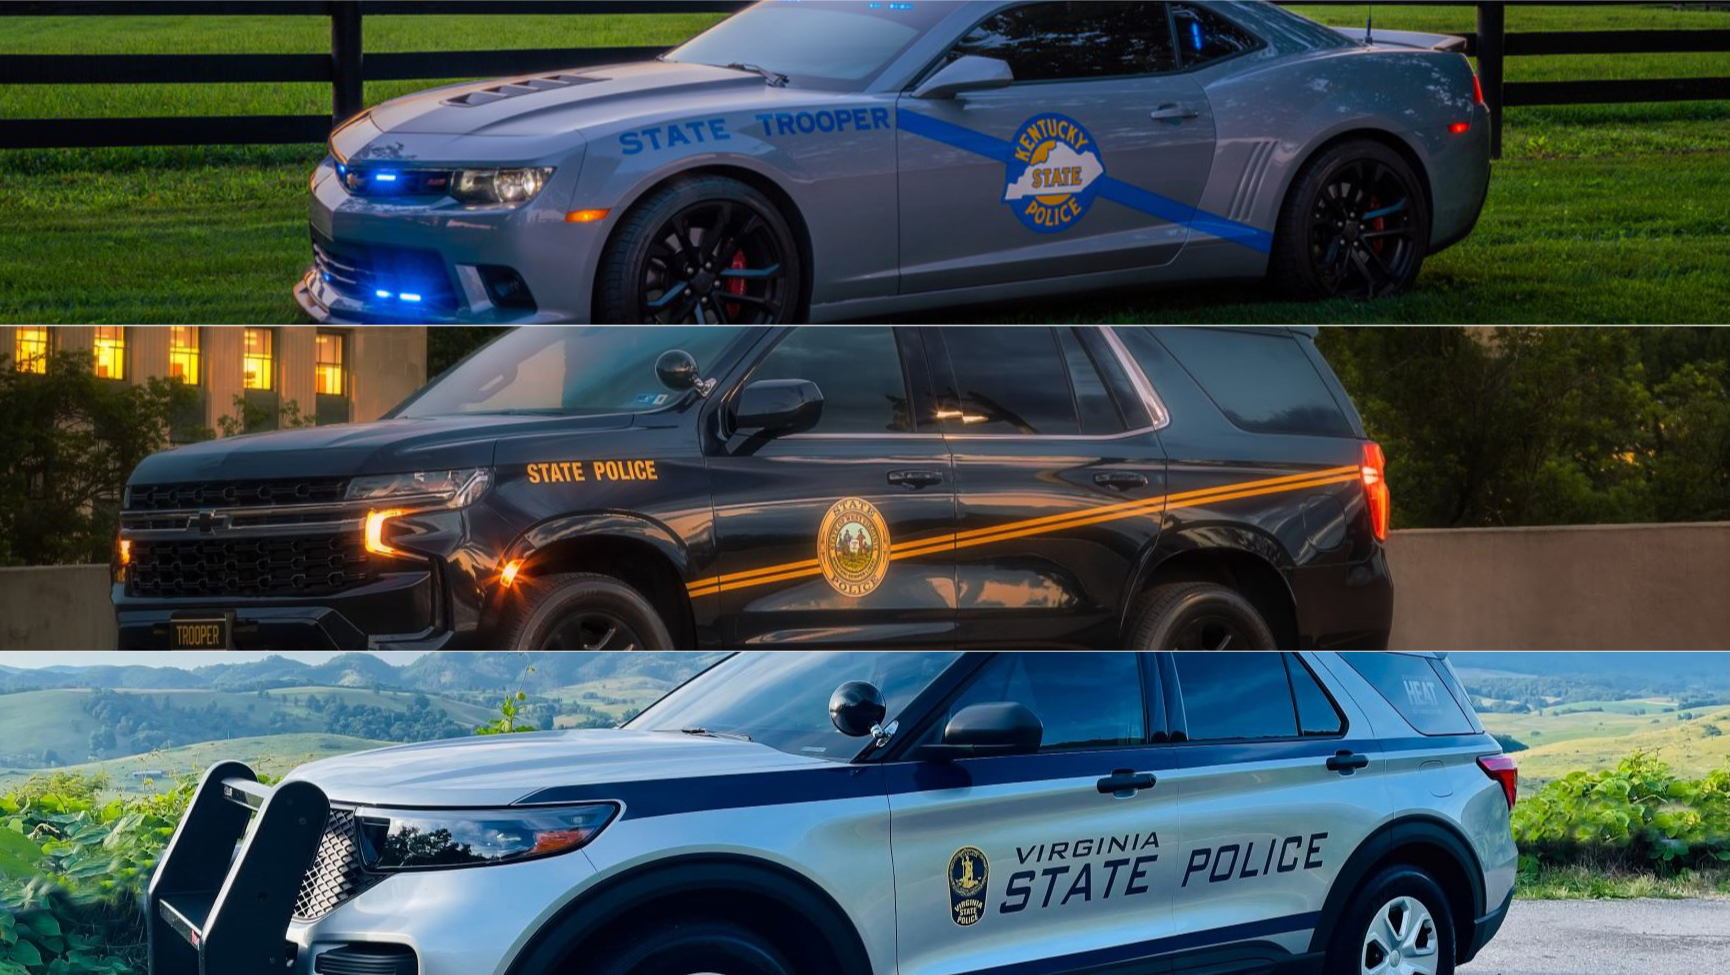 State police agencies compete to see who has best-looking cruisers